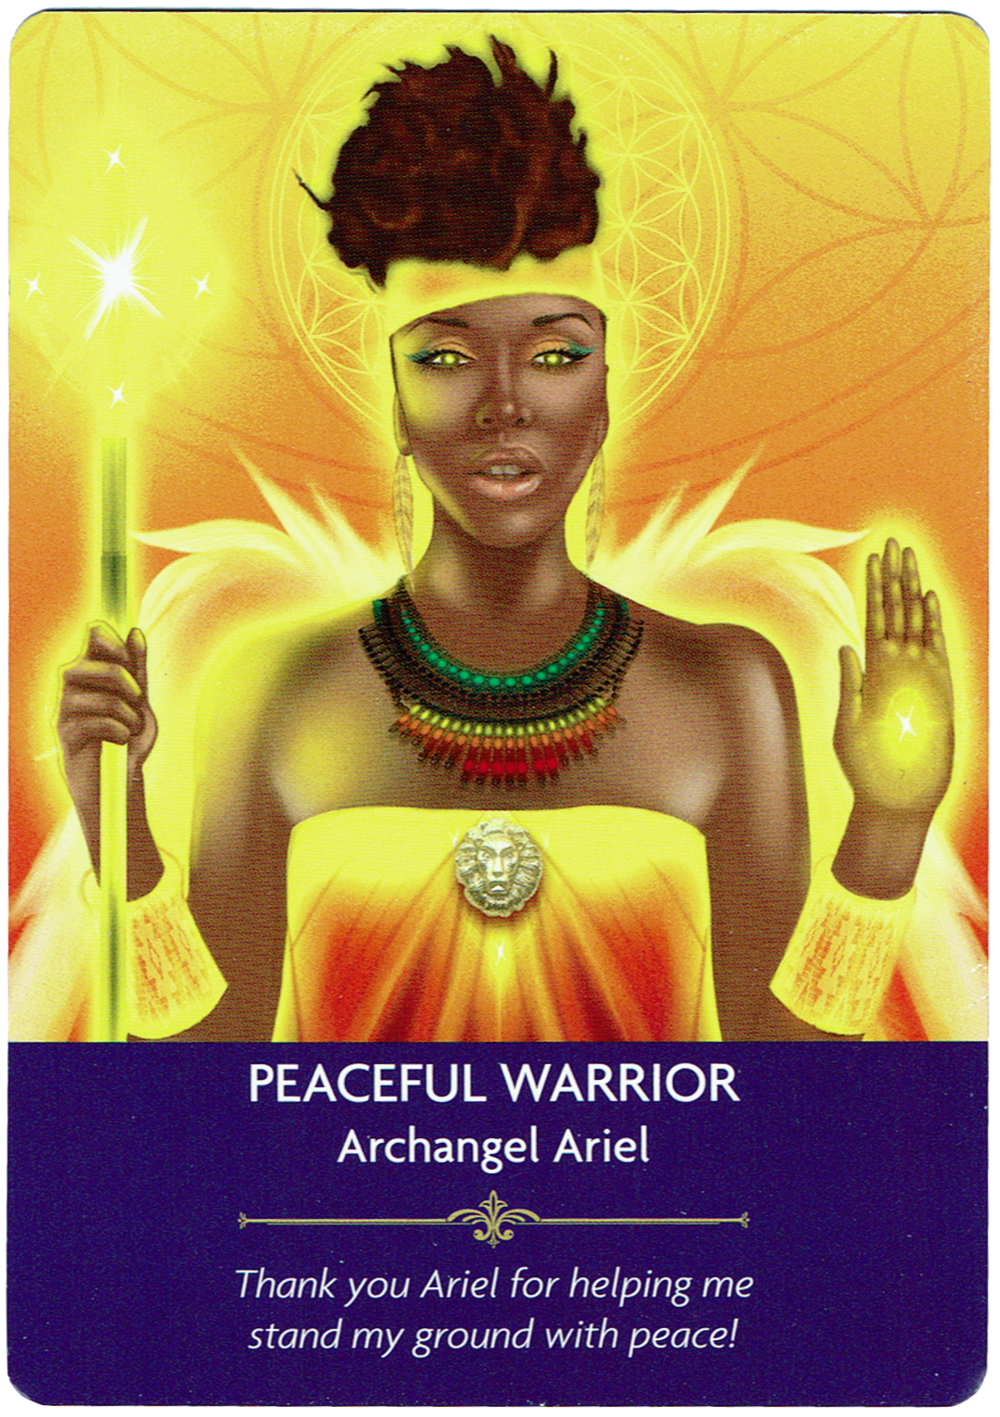 Peaceful Warrior - Archangel Ariel